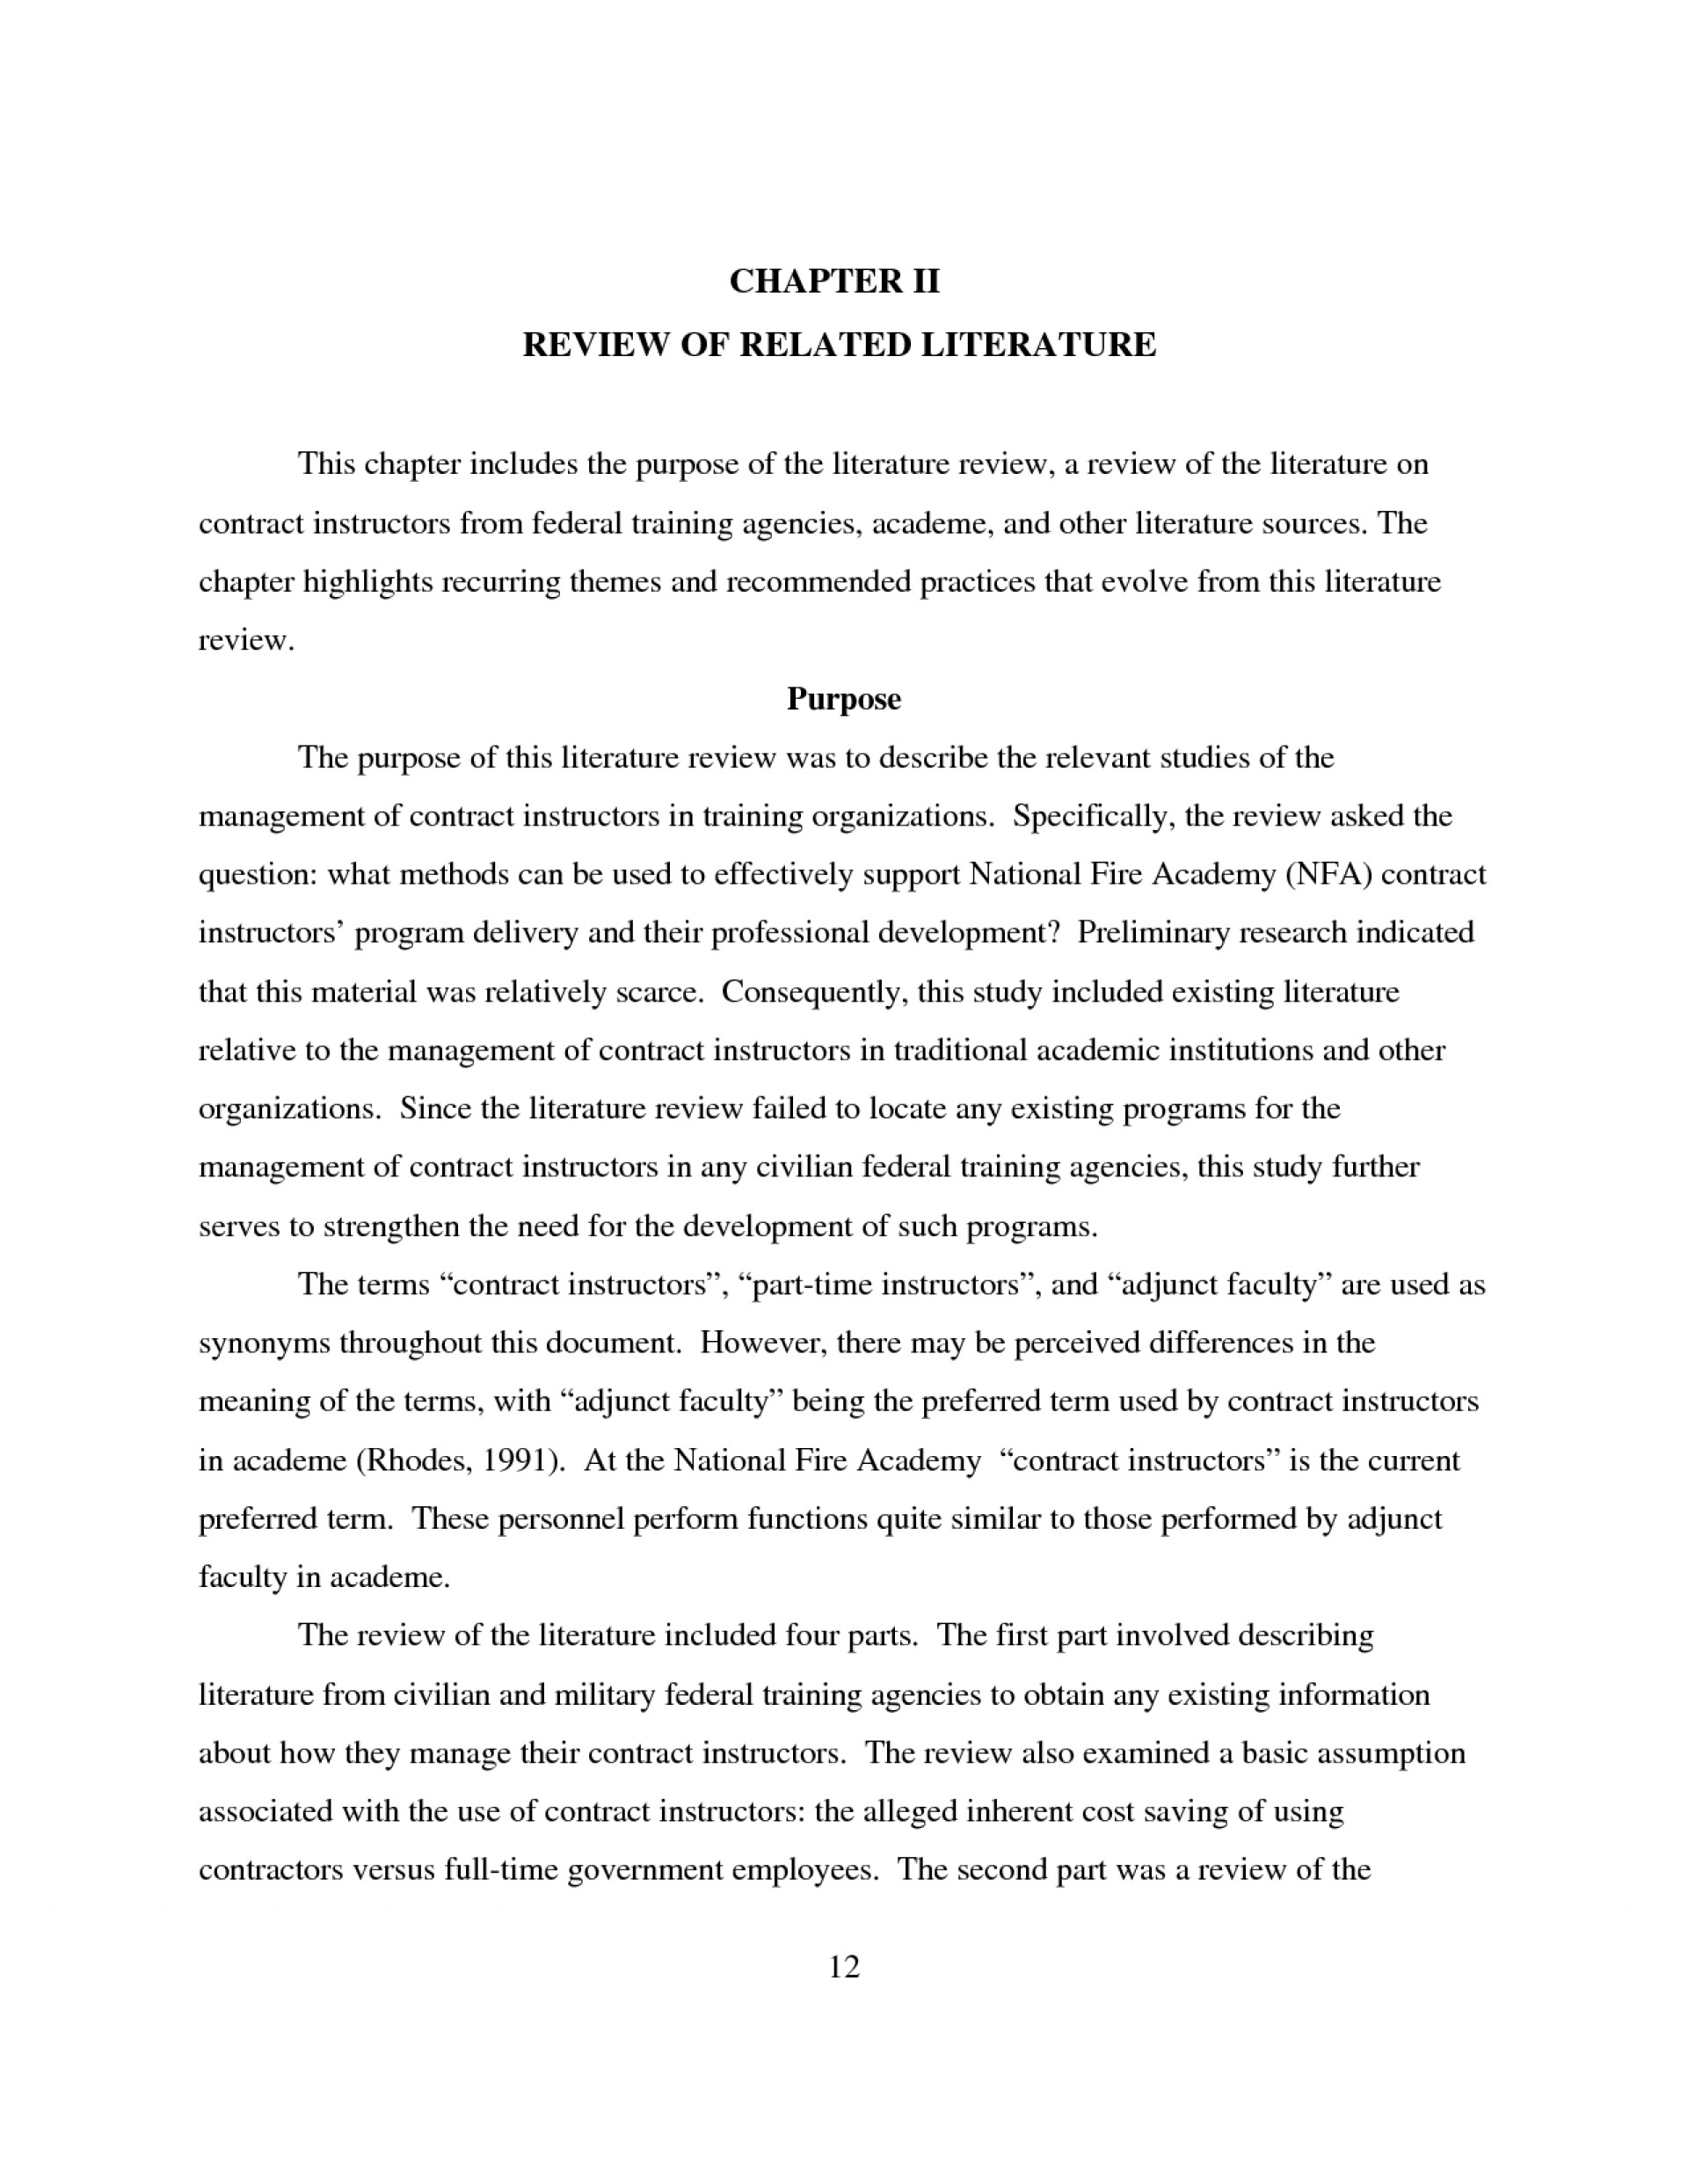 002 Example Research Paper Review Related Literature ~ Museumlegs